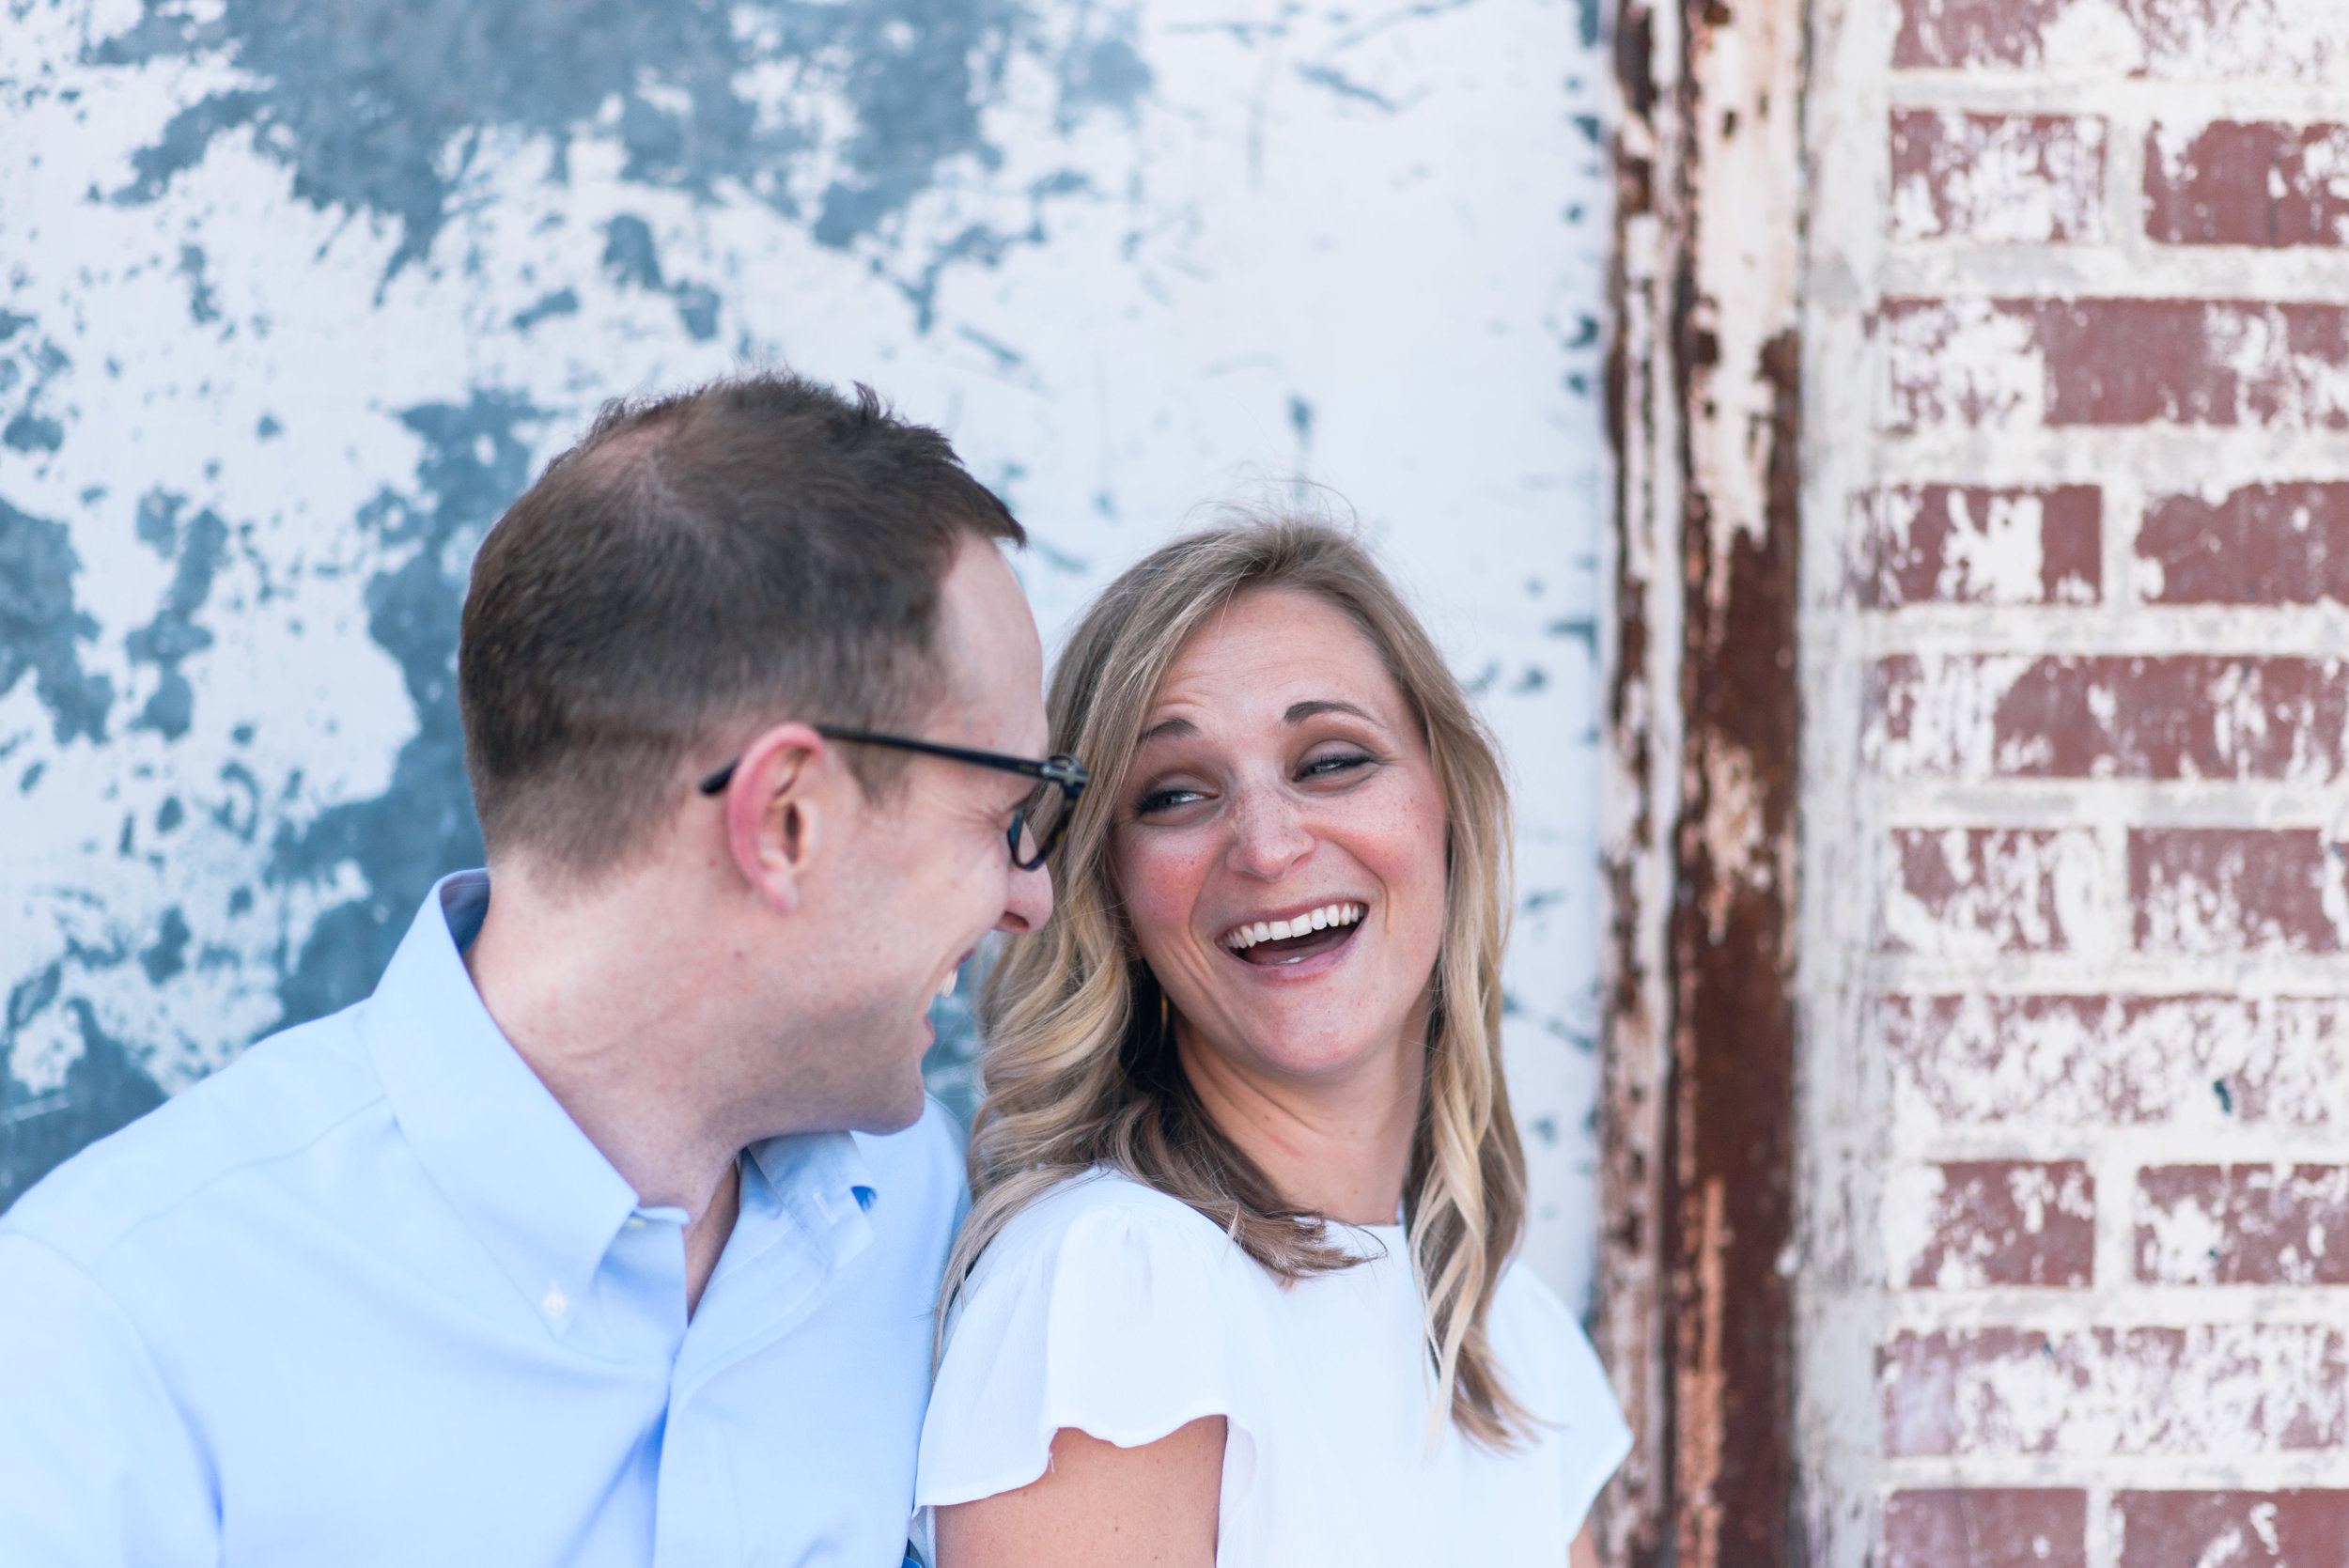 taryn-and-jackson-engagement-save-the-date (8 of 219).jpg